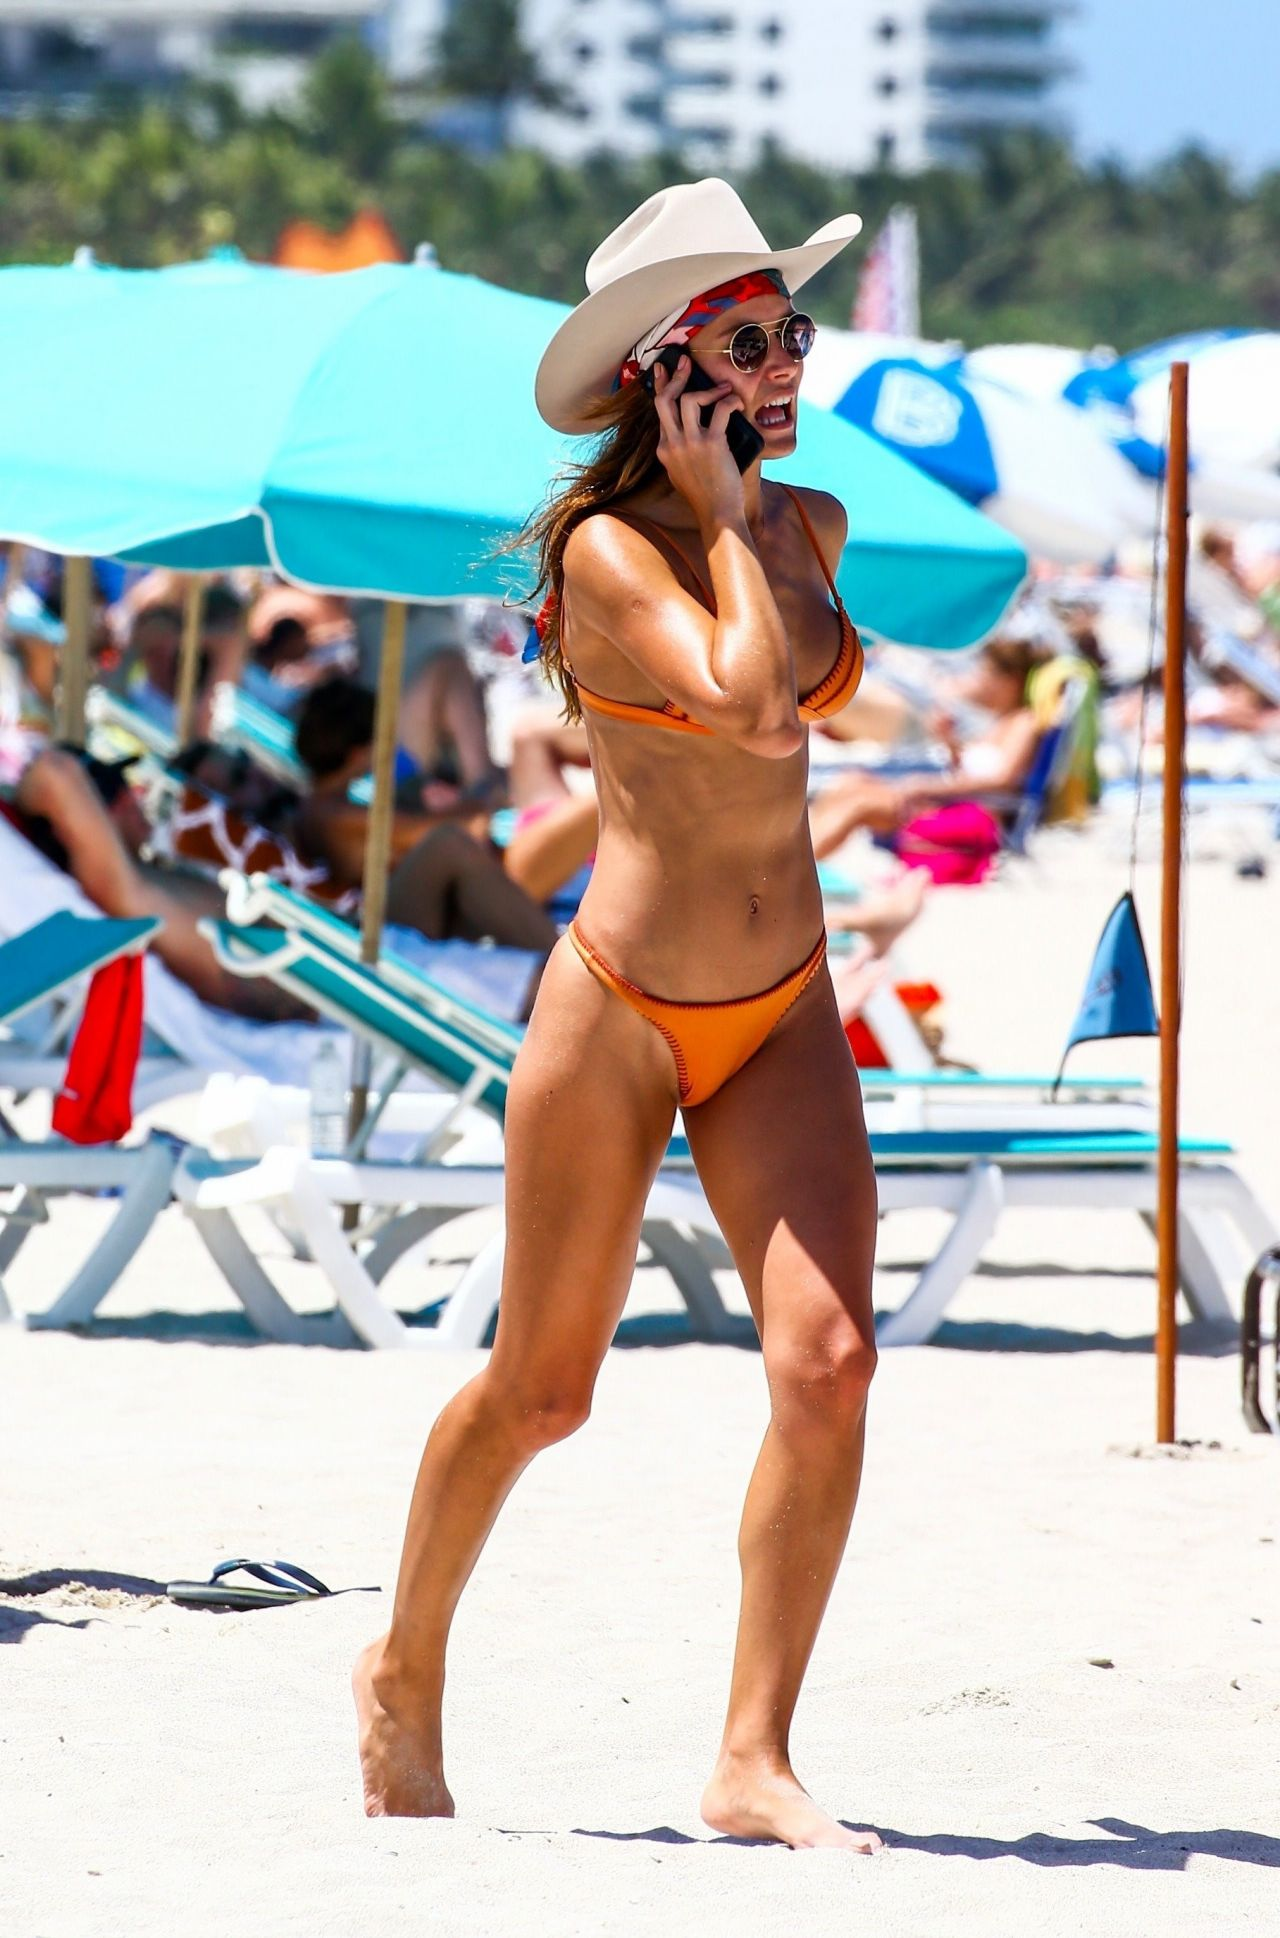 Natalia Borges in Bikini in Miami Beach Pic 12 of 35